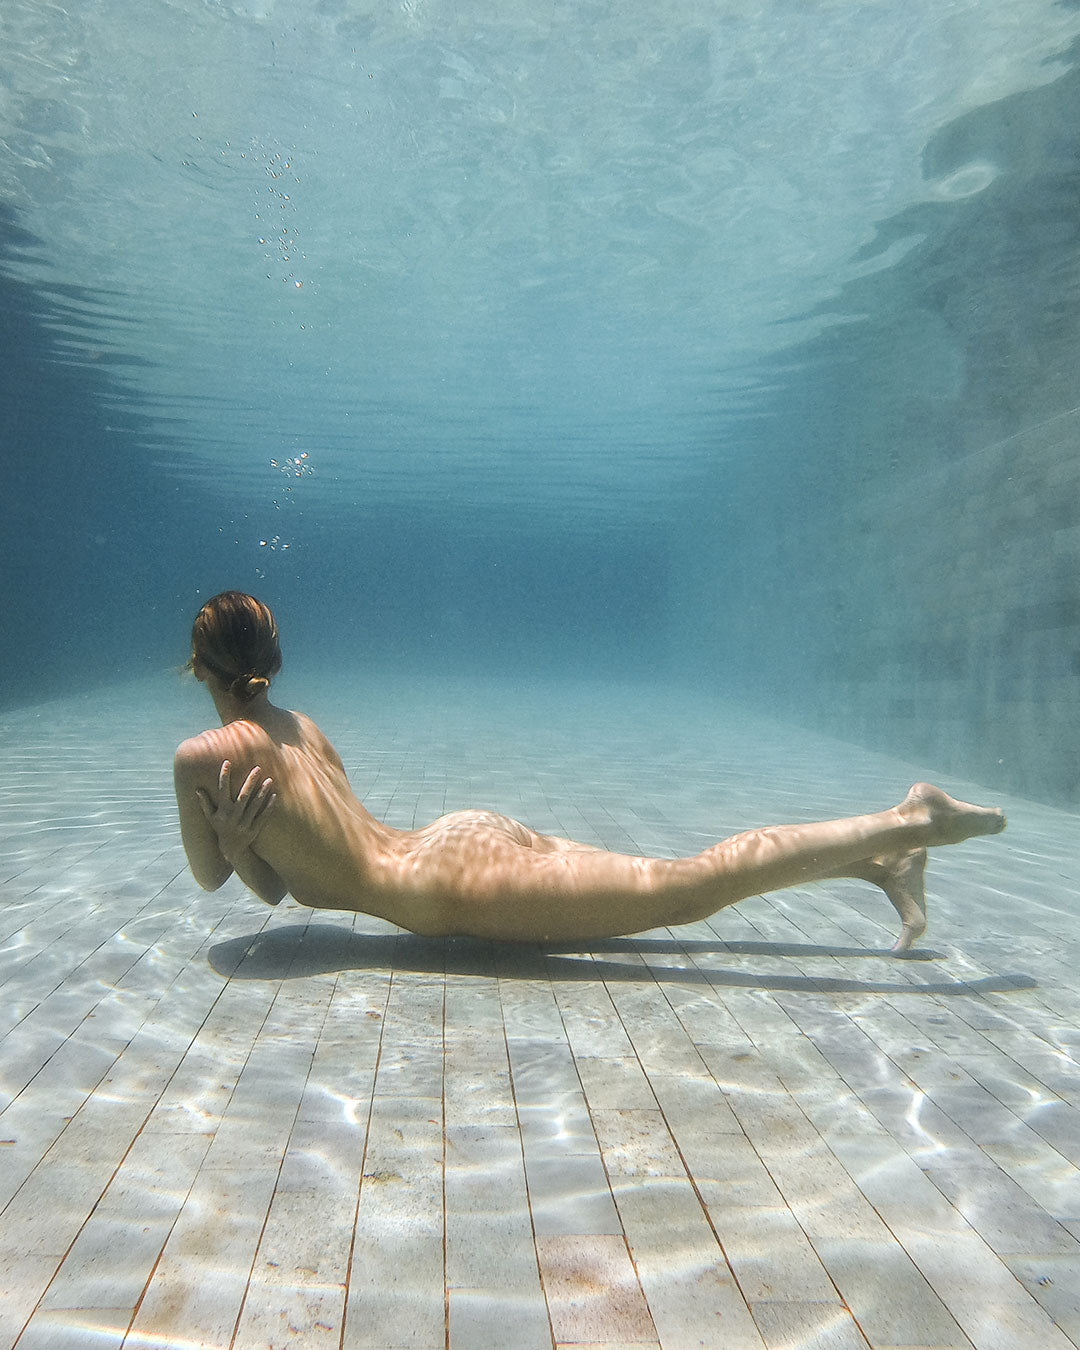 Yoga photography underwater in Thailand